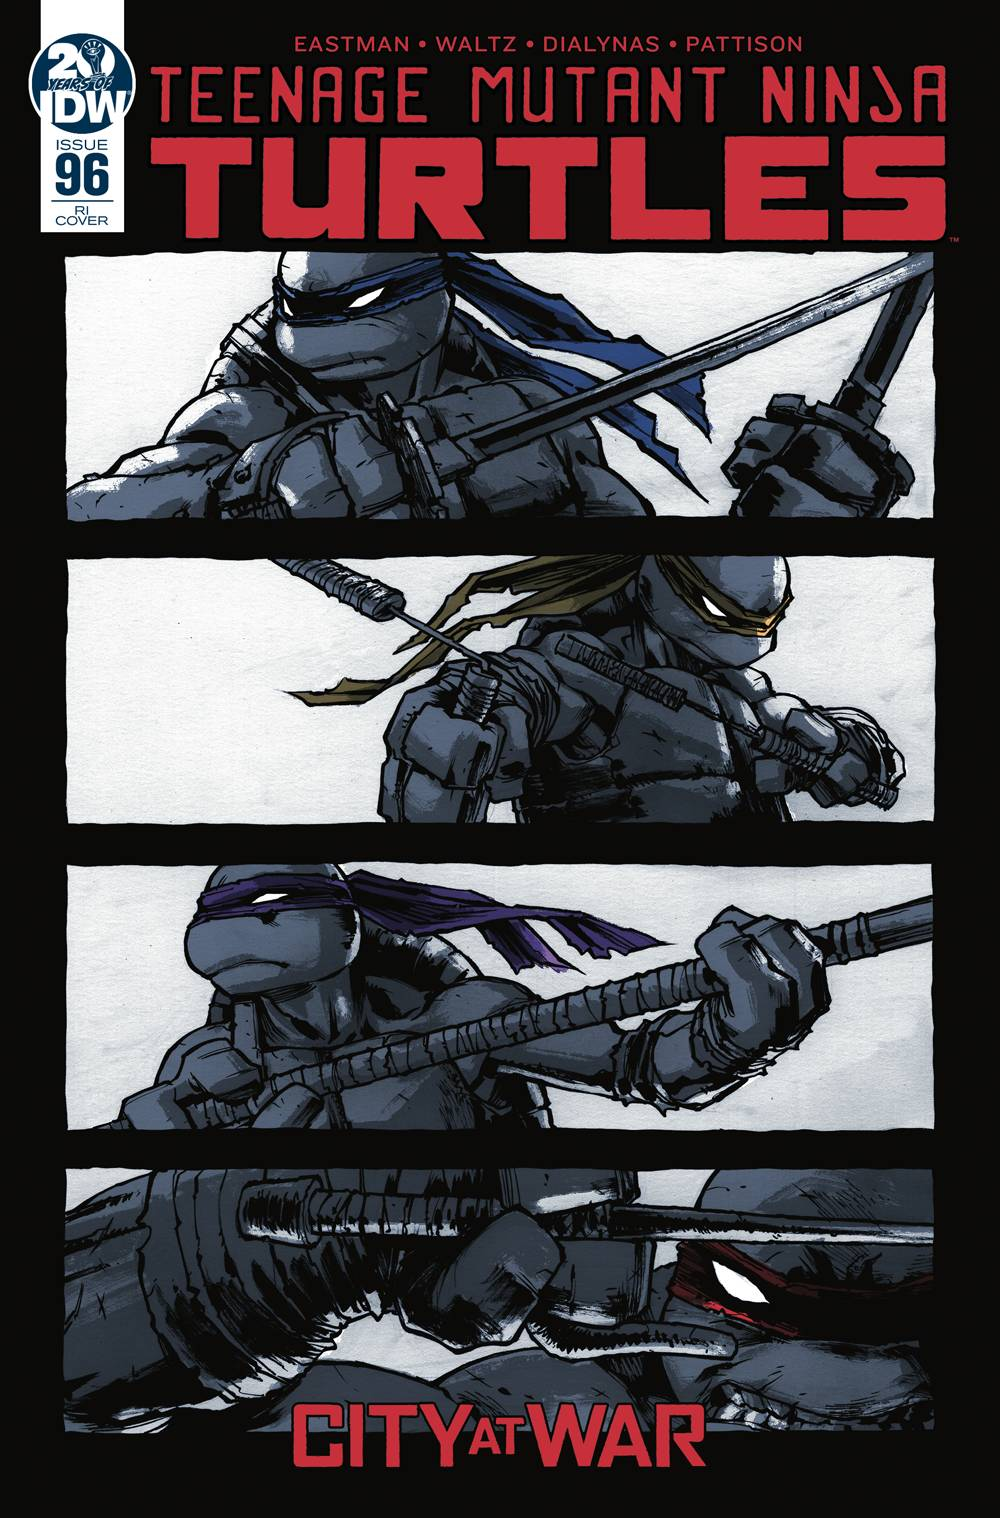 TMNT ONGOING 96 10 COPY INCV CAMPBELL.jpg